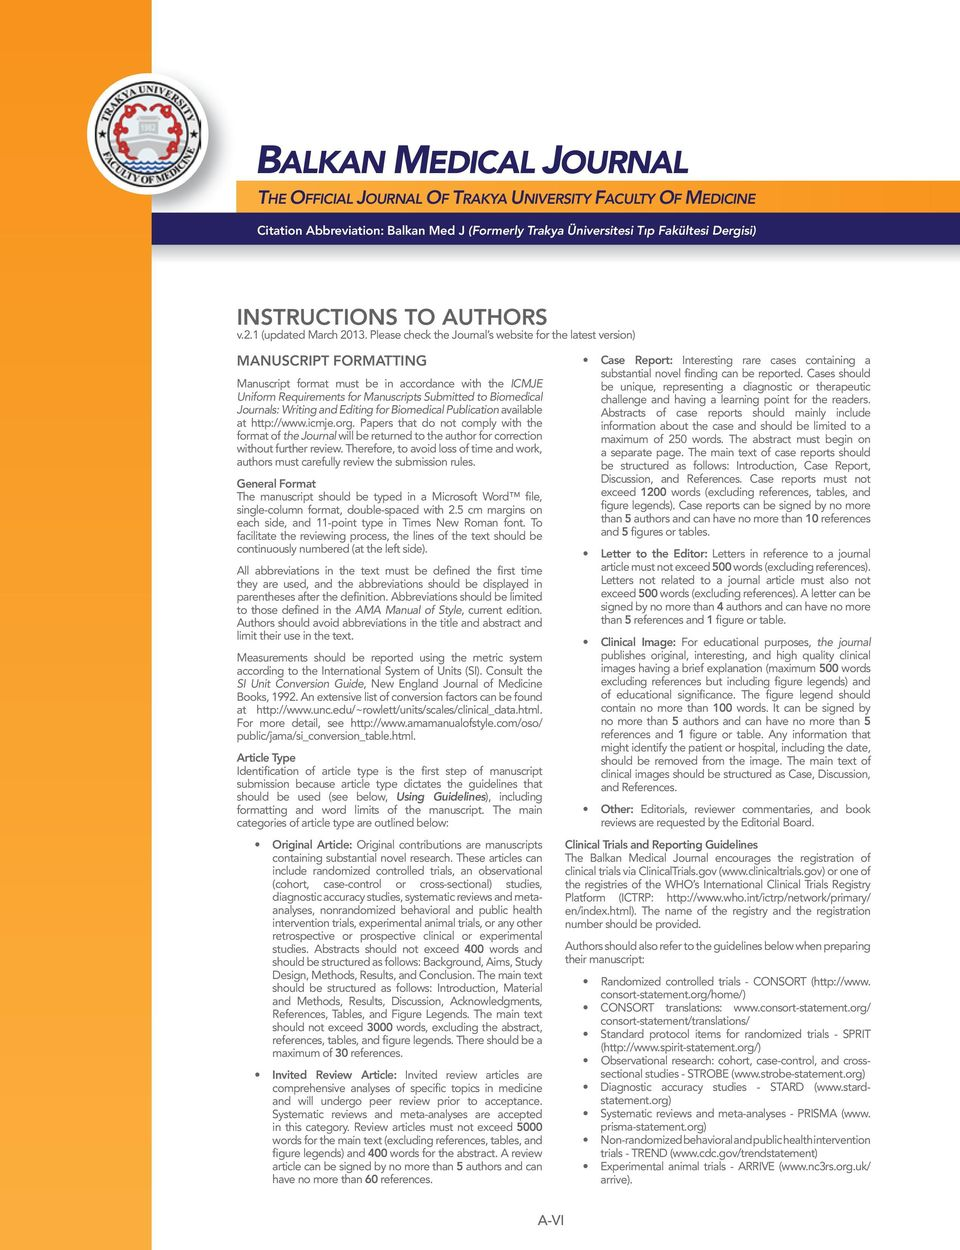 Journals: Writing and Editing for Biomedical Publication available at http://www.icmje.org.